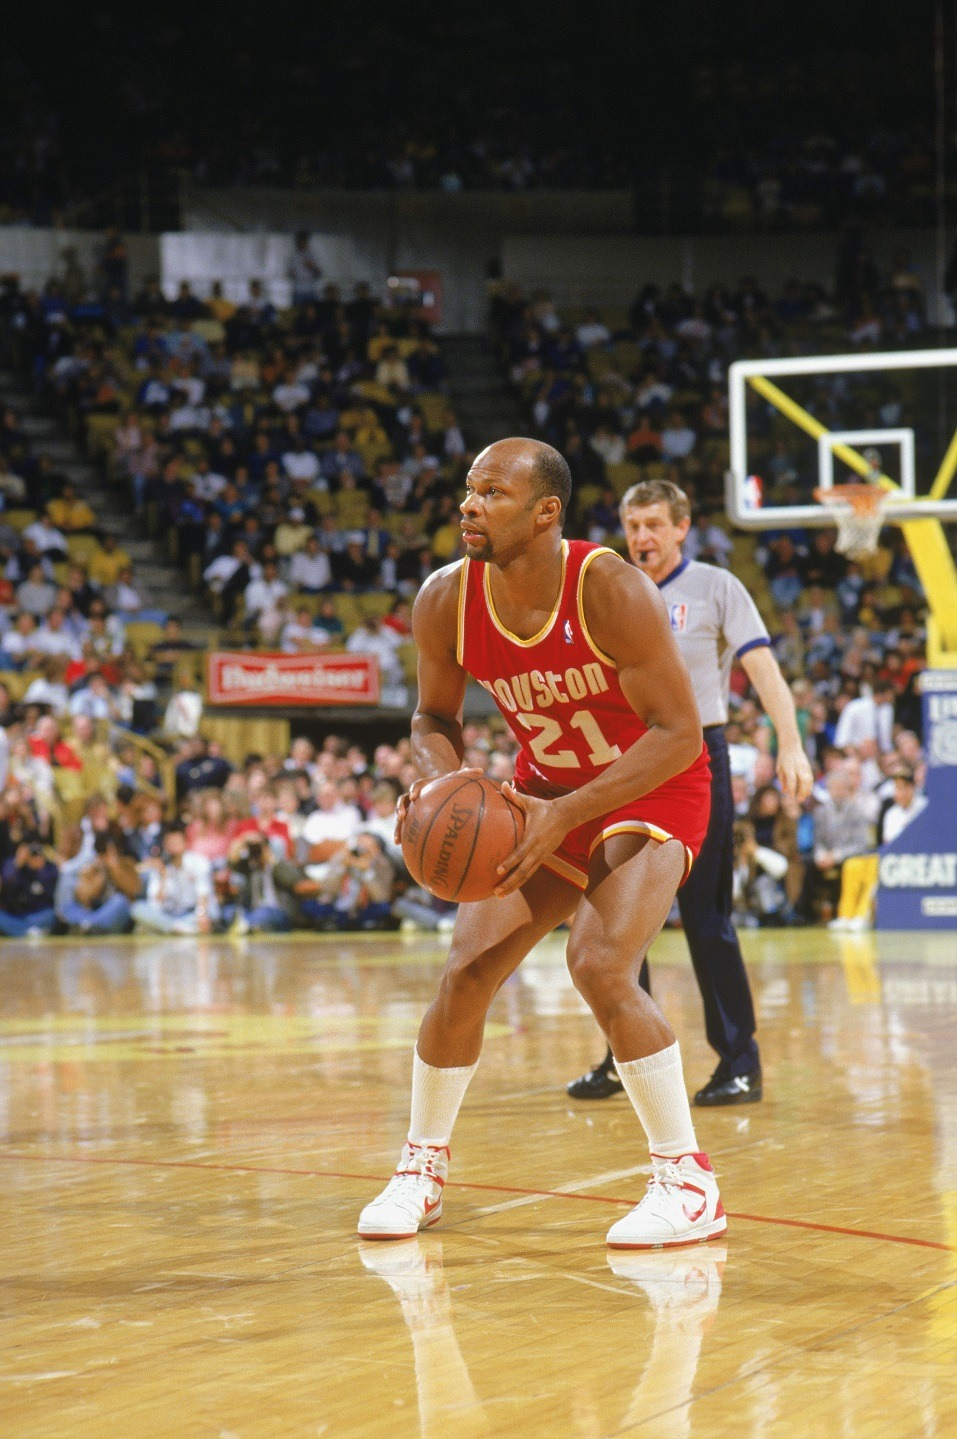 World B. Free of the Houston Rockets looks to shoot during a game